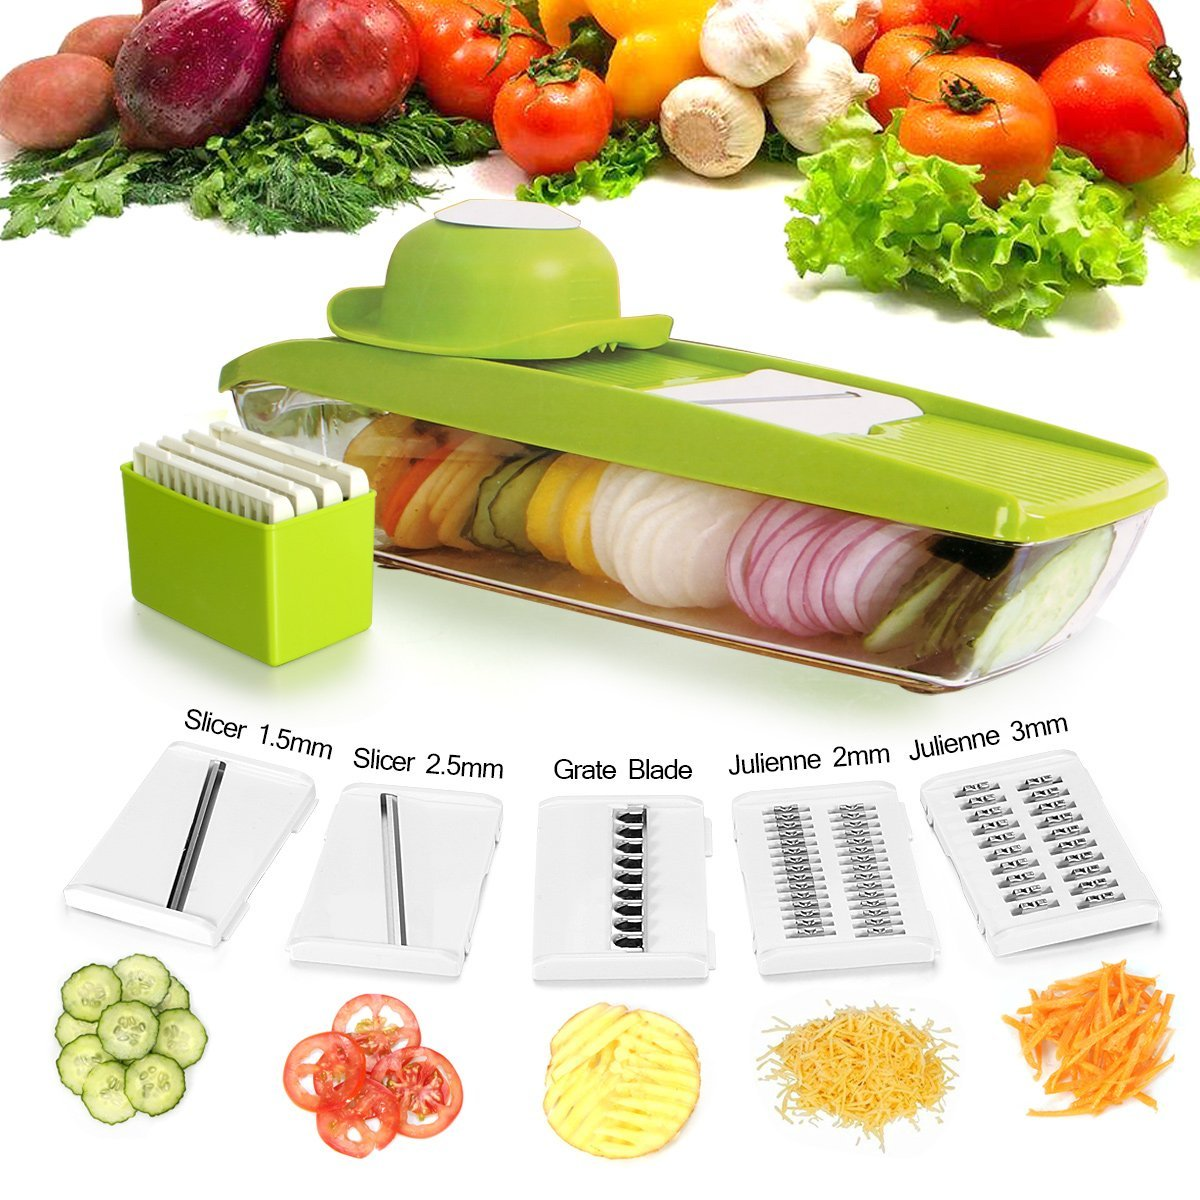 Vegetable Mandoline Slicer, Peeler, Potato Slicer - Vegetable Grater Cutter for Cucumber, Onion, Cheese with 5 Stainless Steel Blades, Vegetable Slicer Chopper- The Best Choice for Family & Kitchen